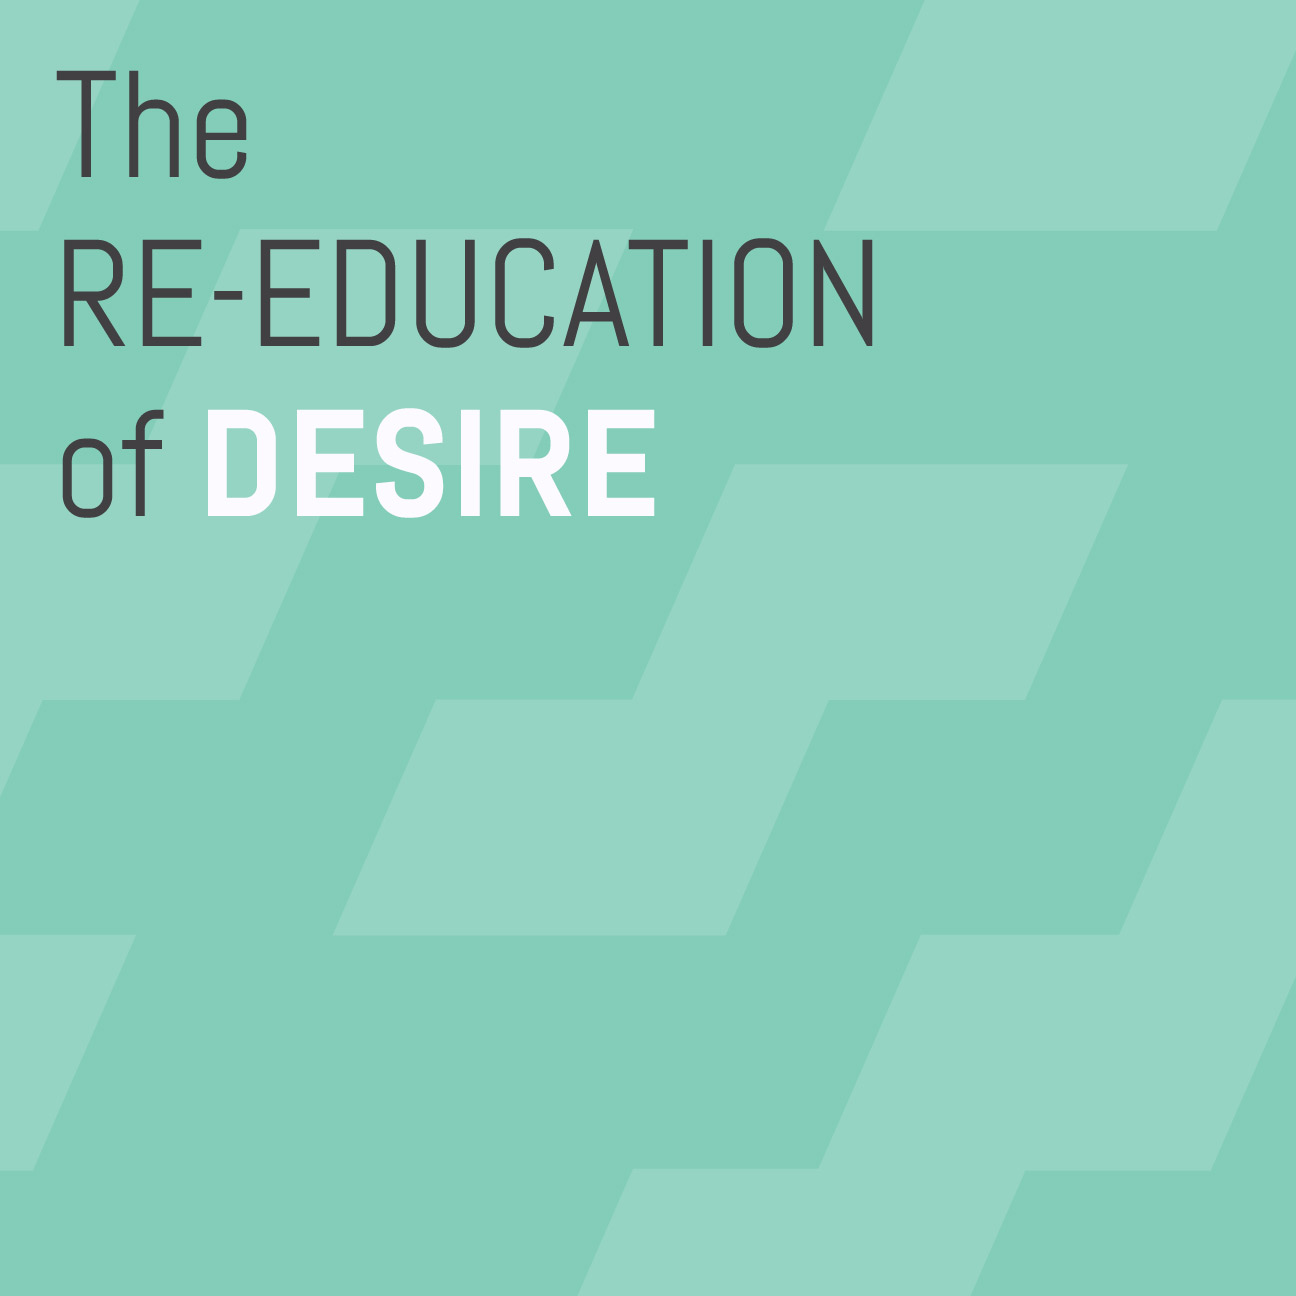 Re-Education-of-Desire.jpg